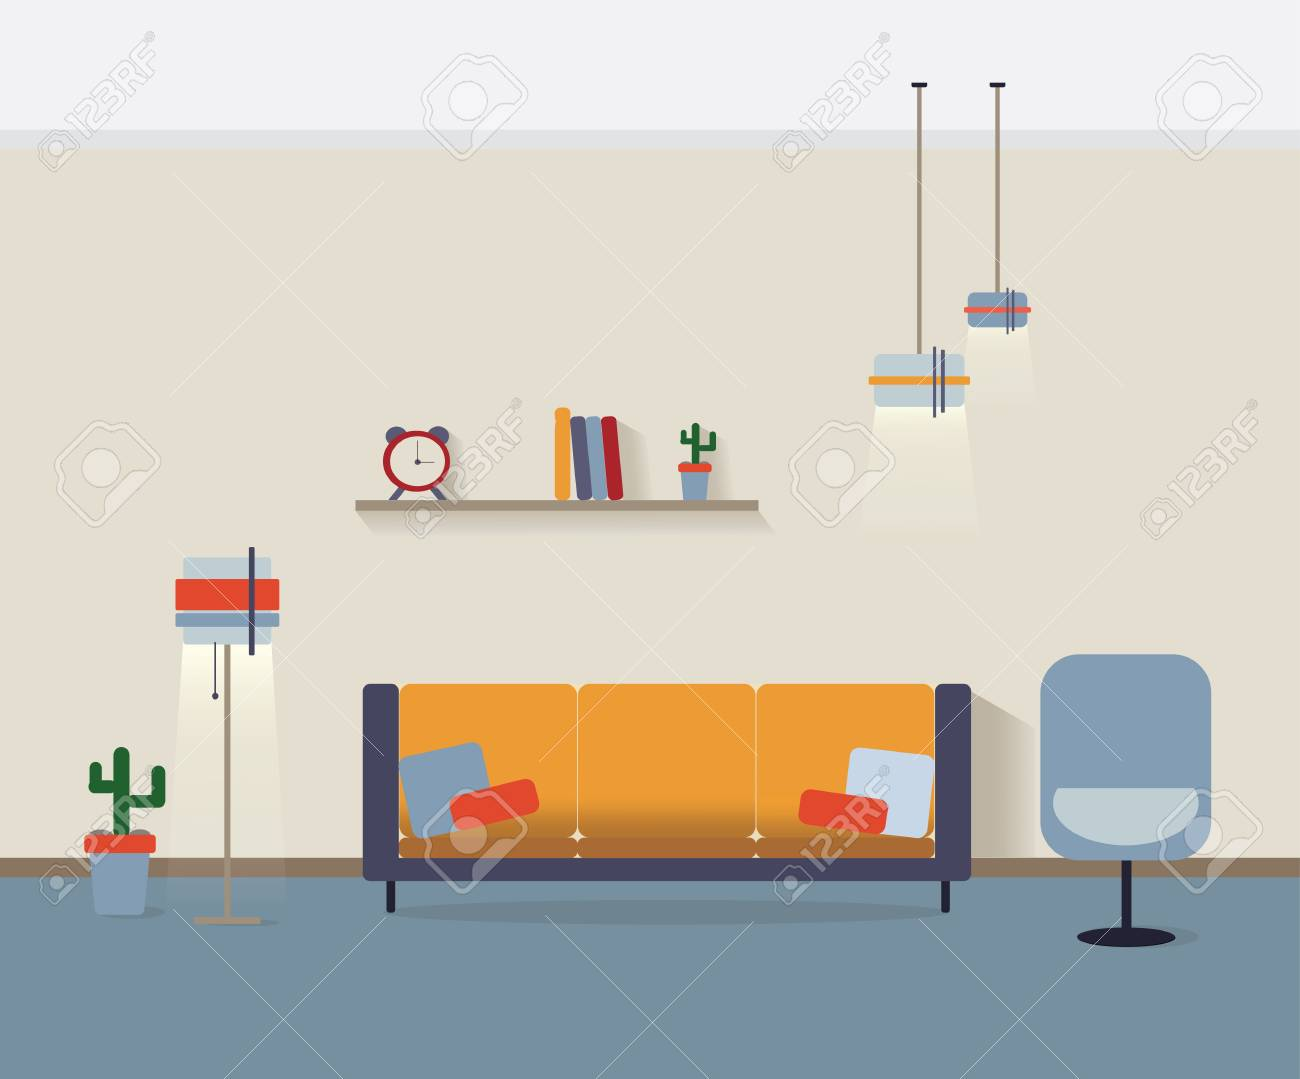 Modern Interior Vector Home Decoration Design Of A Living Room Royalty Free Cliparts Vectors And Stock Illustration Image 70840174